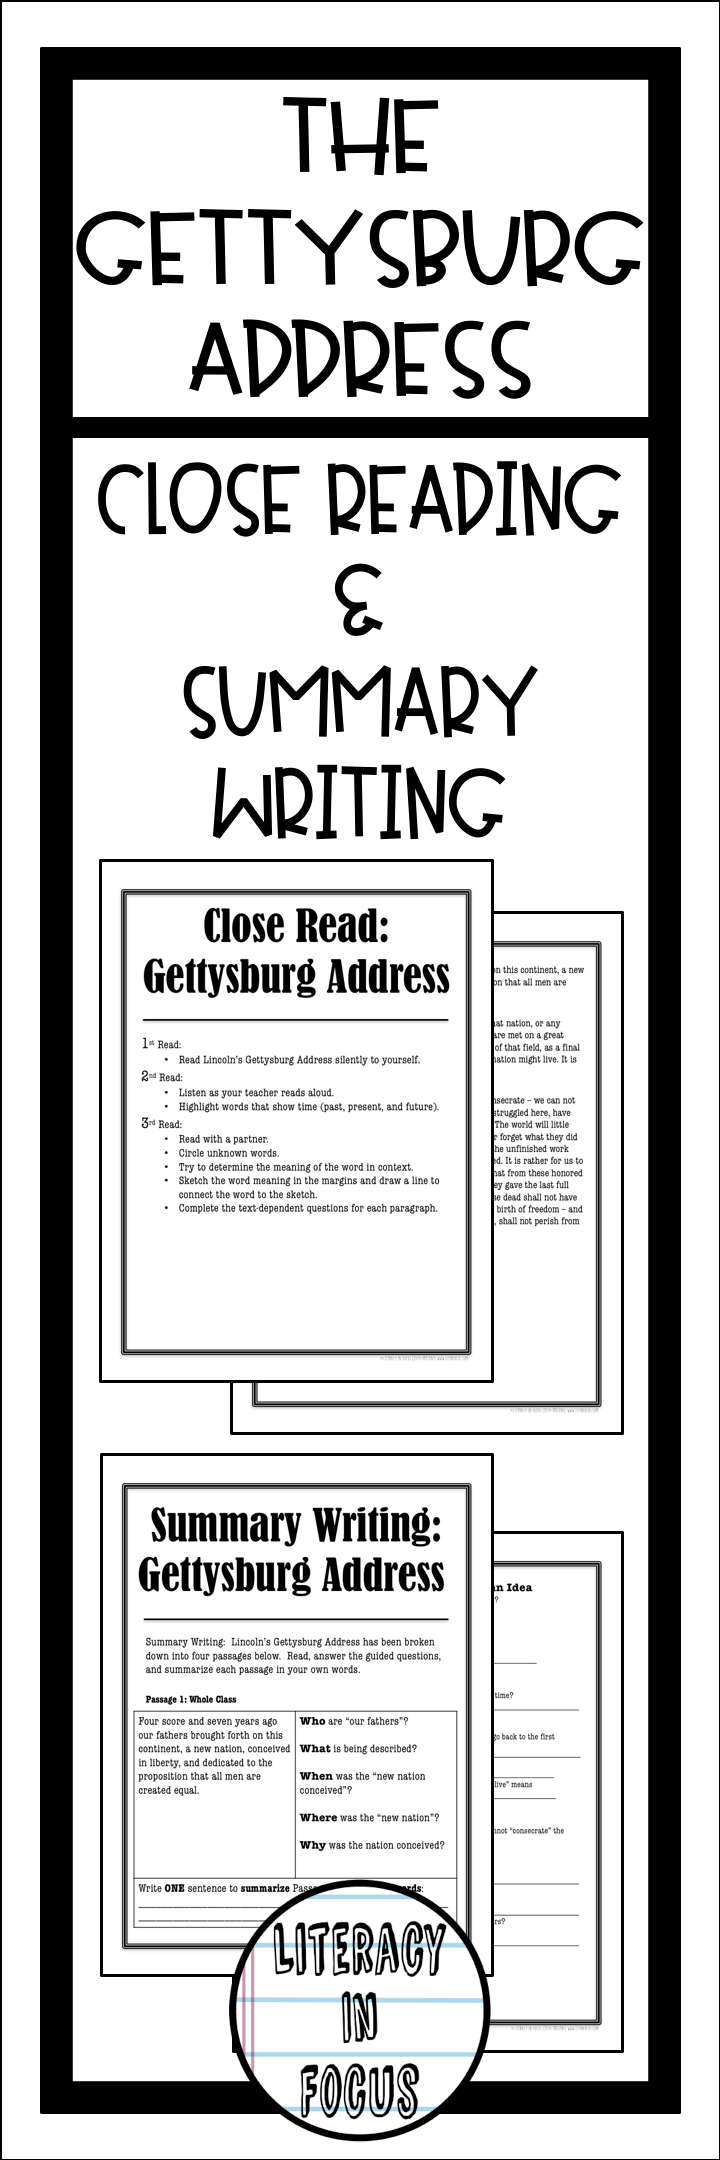 Worksheets Gettysburg Address Worksheet gettysburg address close read and summary writing pinterest lincolns reading lesson ensure student understanding of address